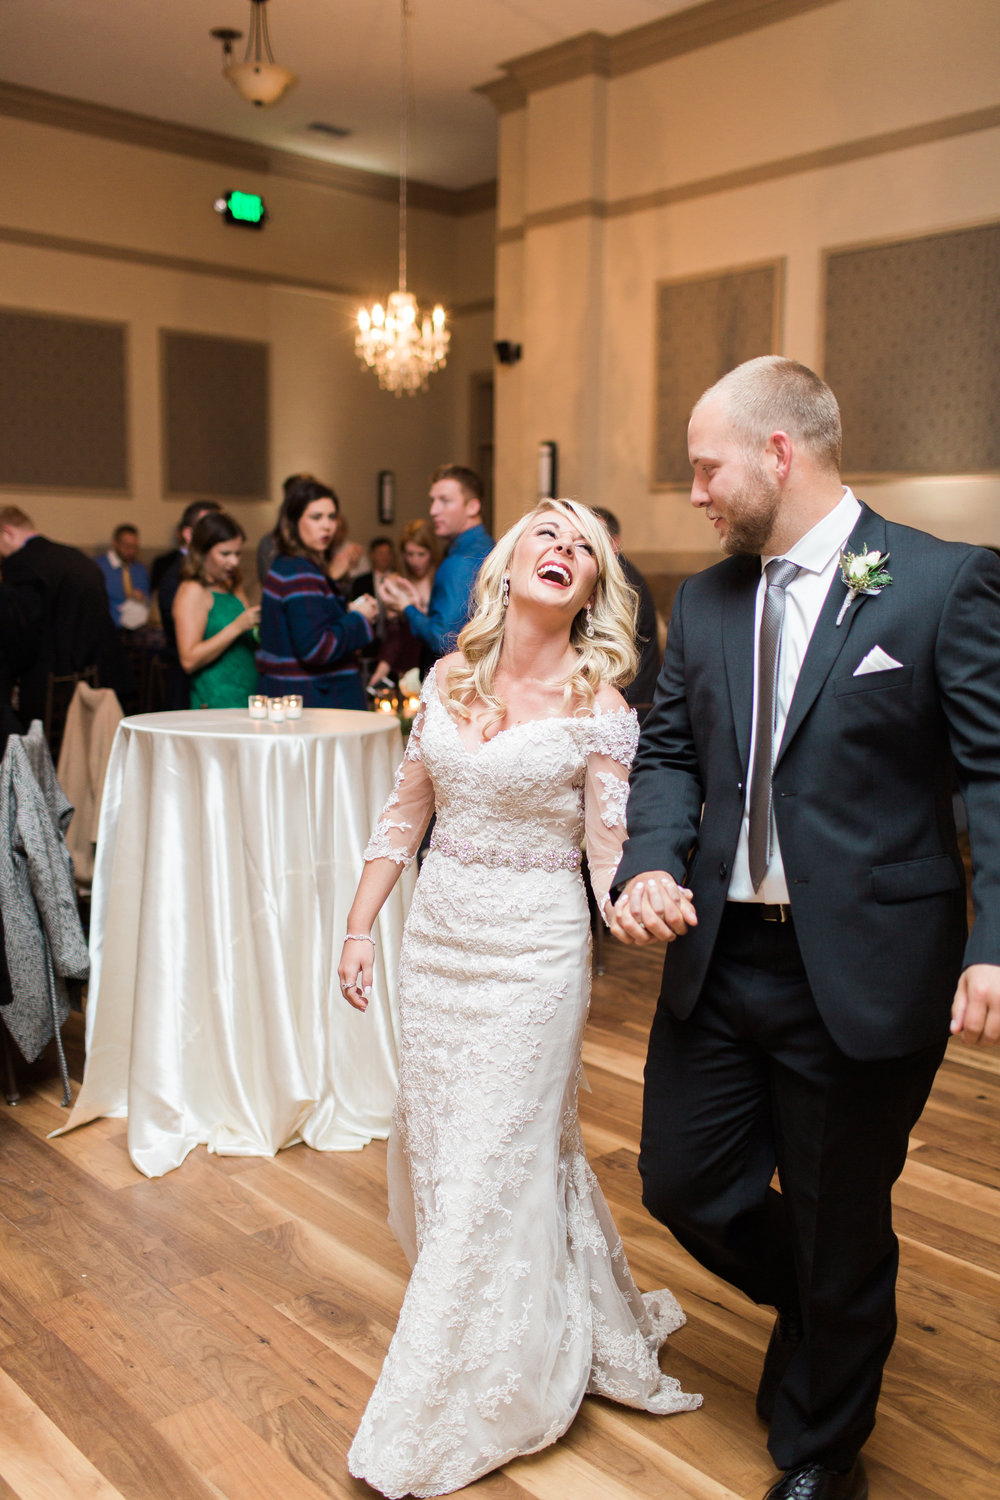 Magnolia Adams Photography | Bride and Groom | Reception